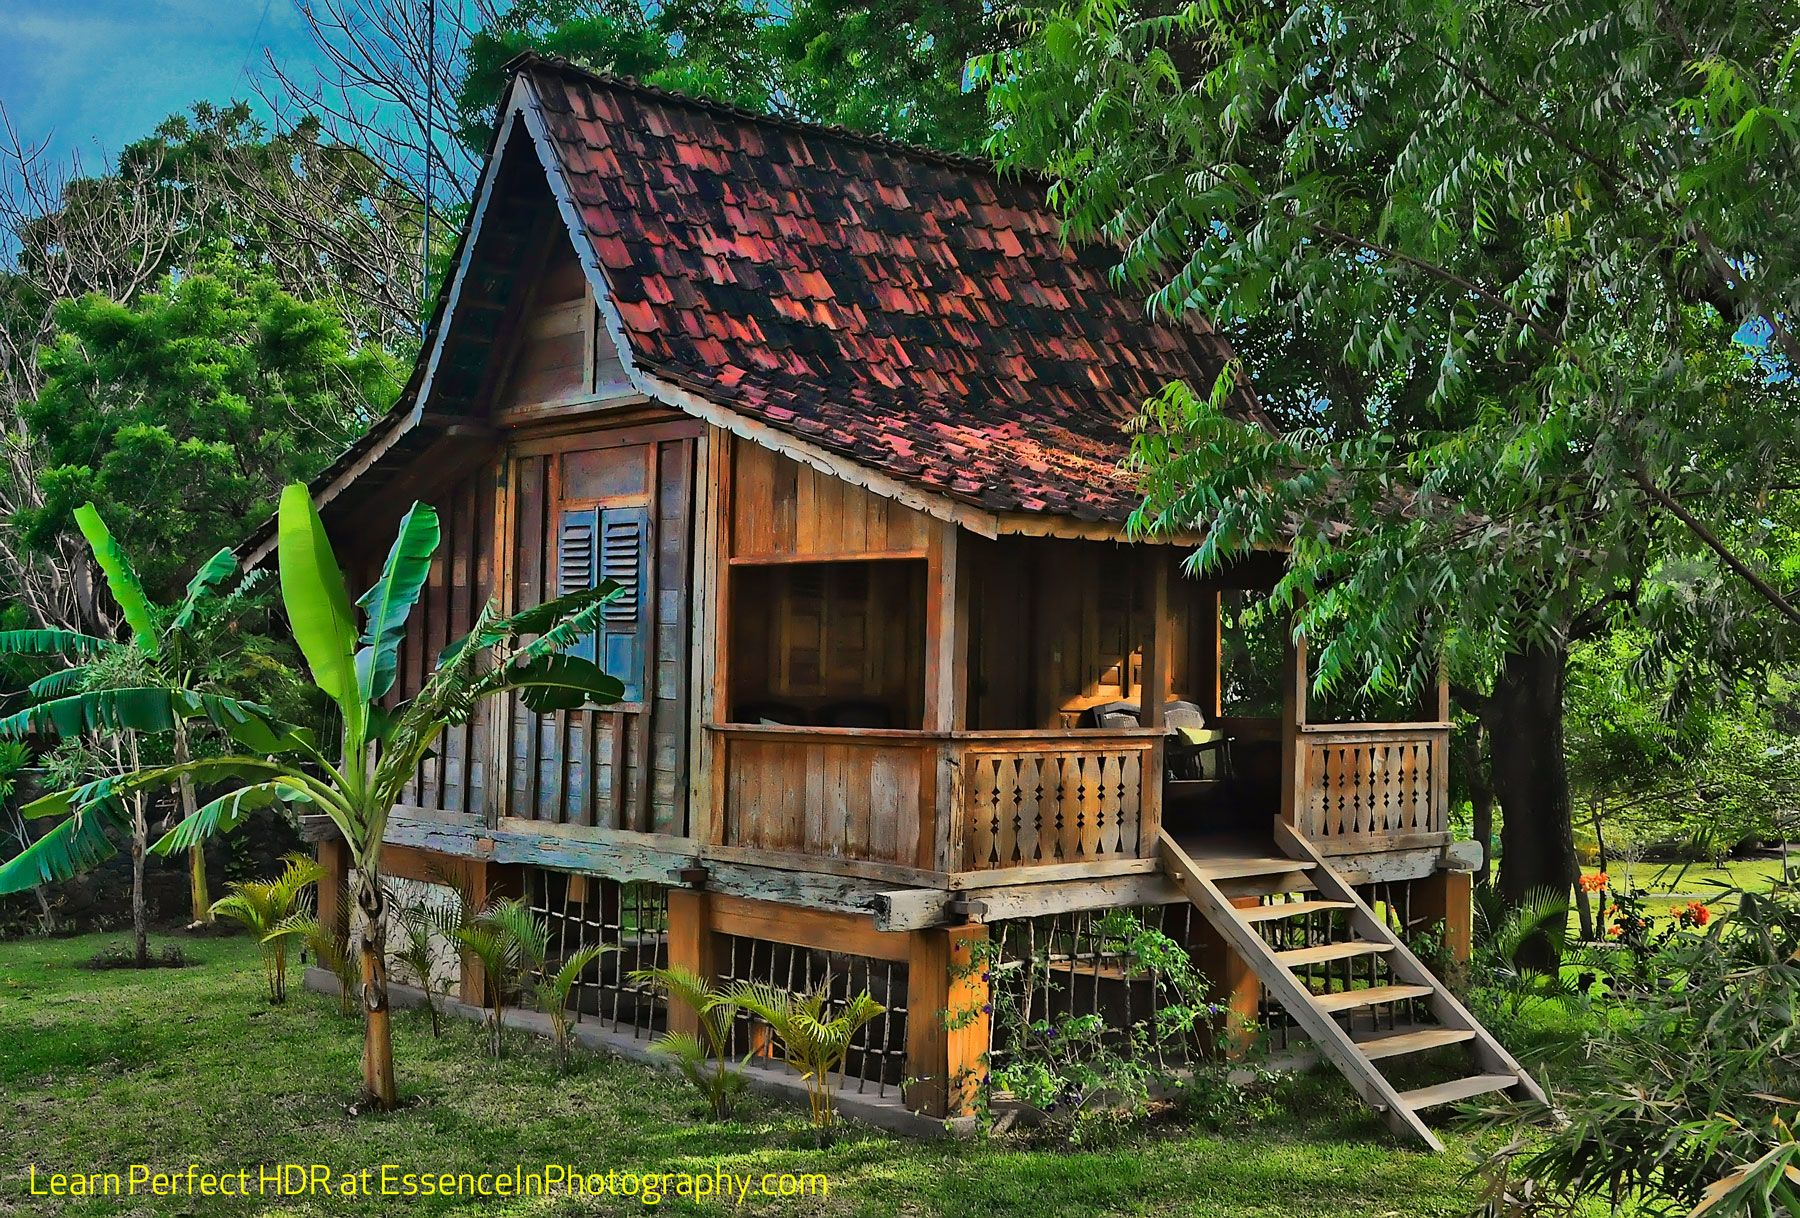 Wood House Design Village Hut Pemuteran Bay Bali Indonesia I Want To Go To